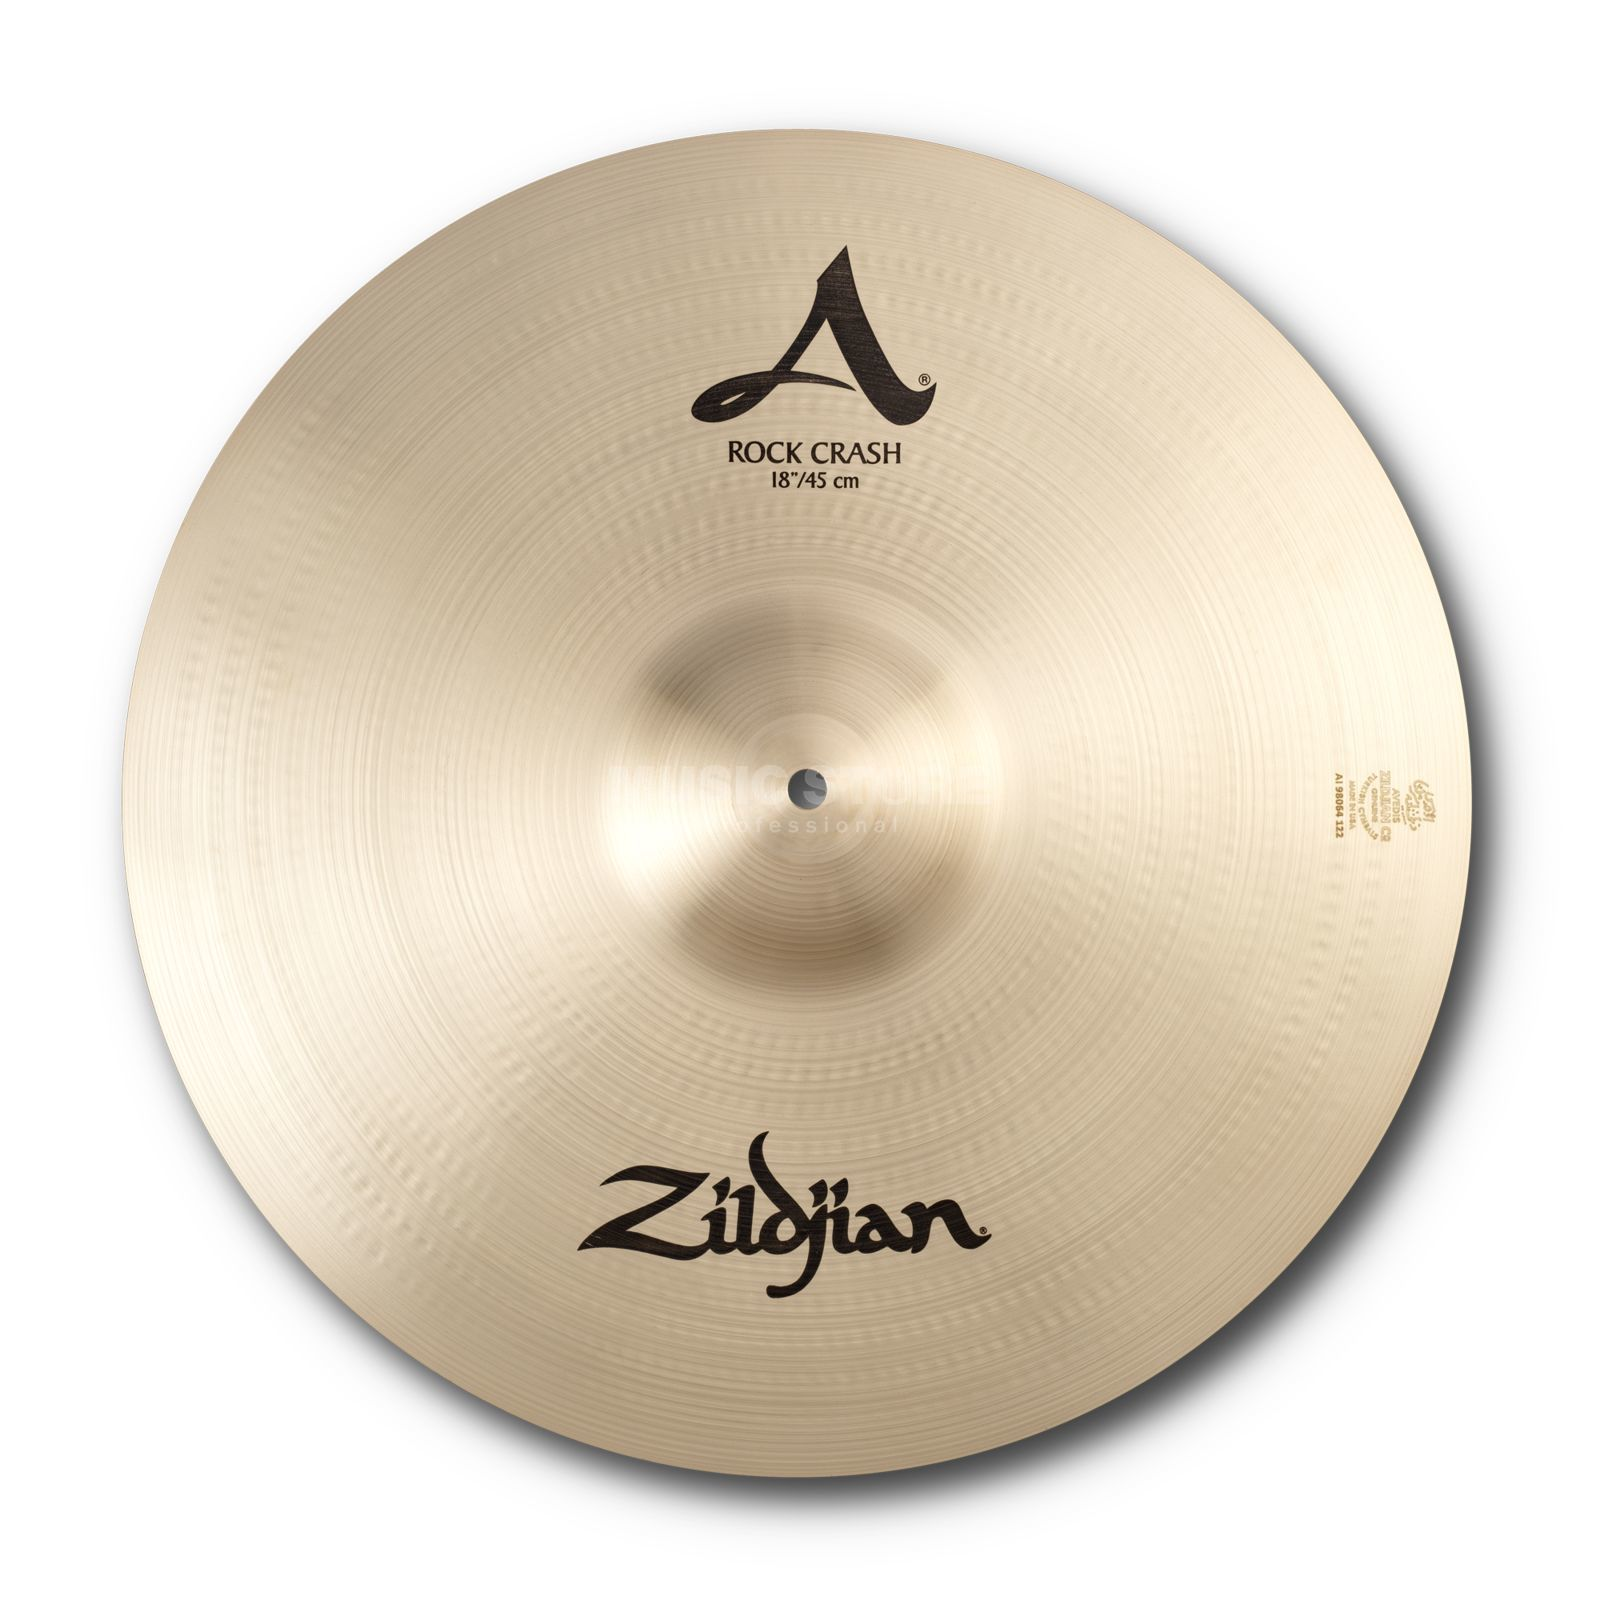 "Zildjian A' Zildjian Rock Crash 18"", Traditional Finish Produktbild"